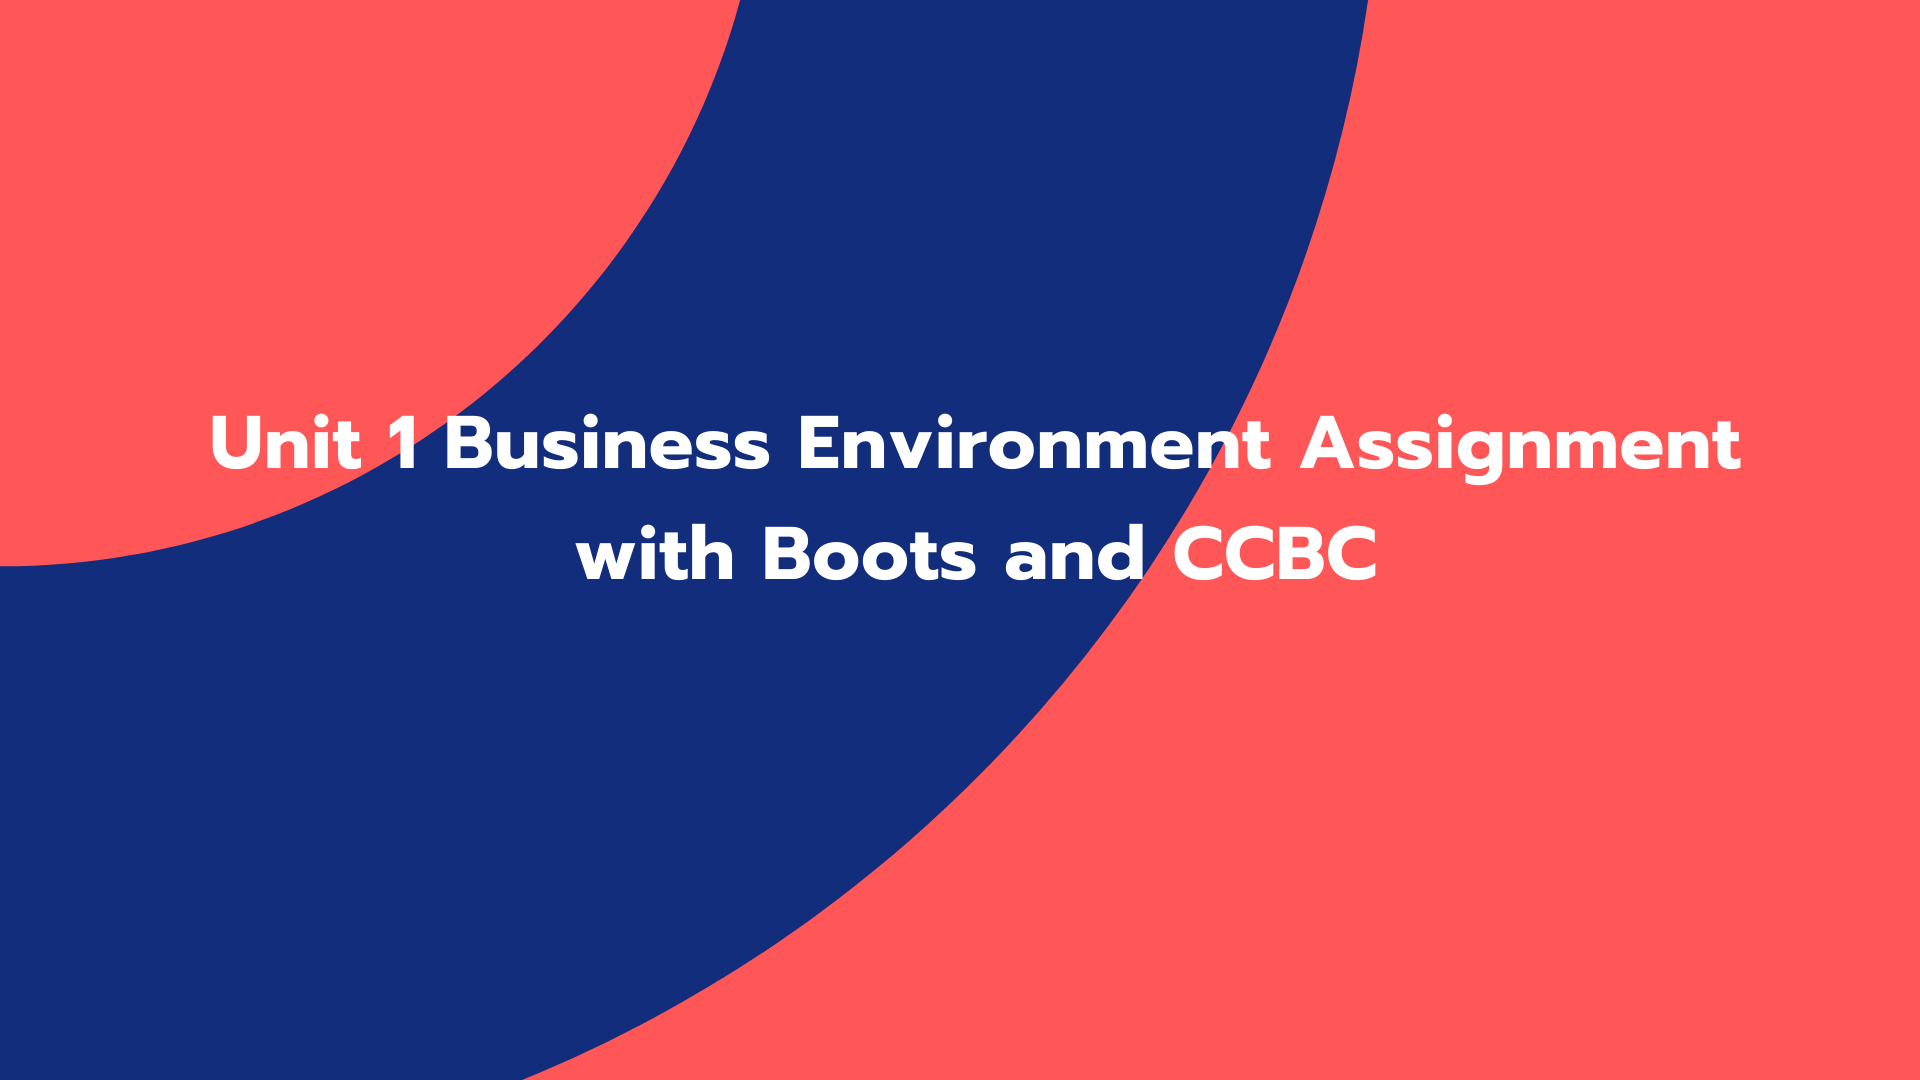 Unit 1 Business Environment Assignment with Boots and CCBC